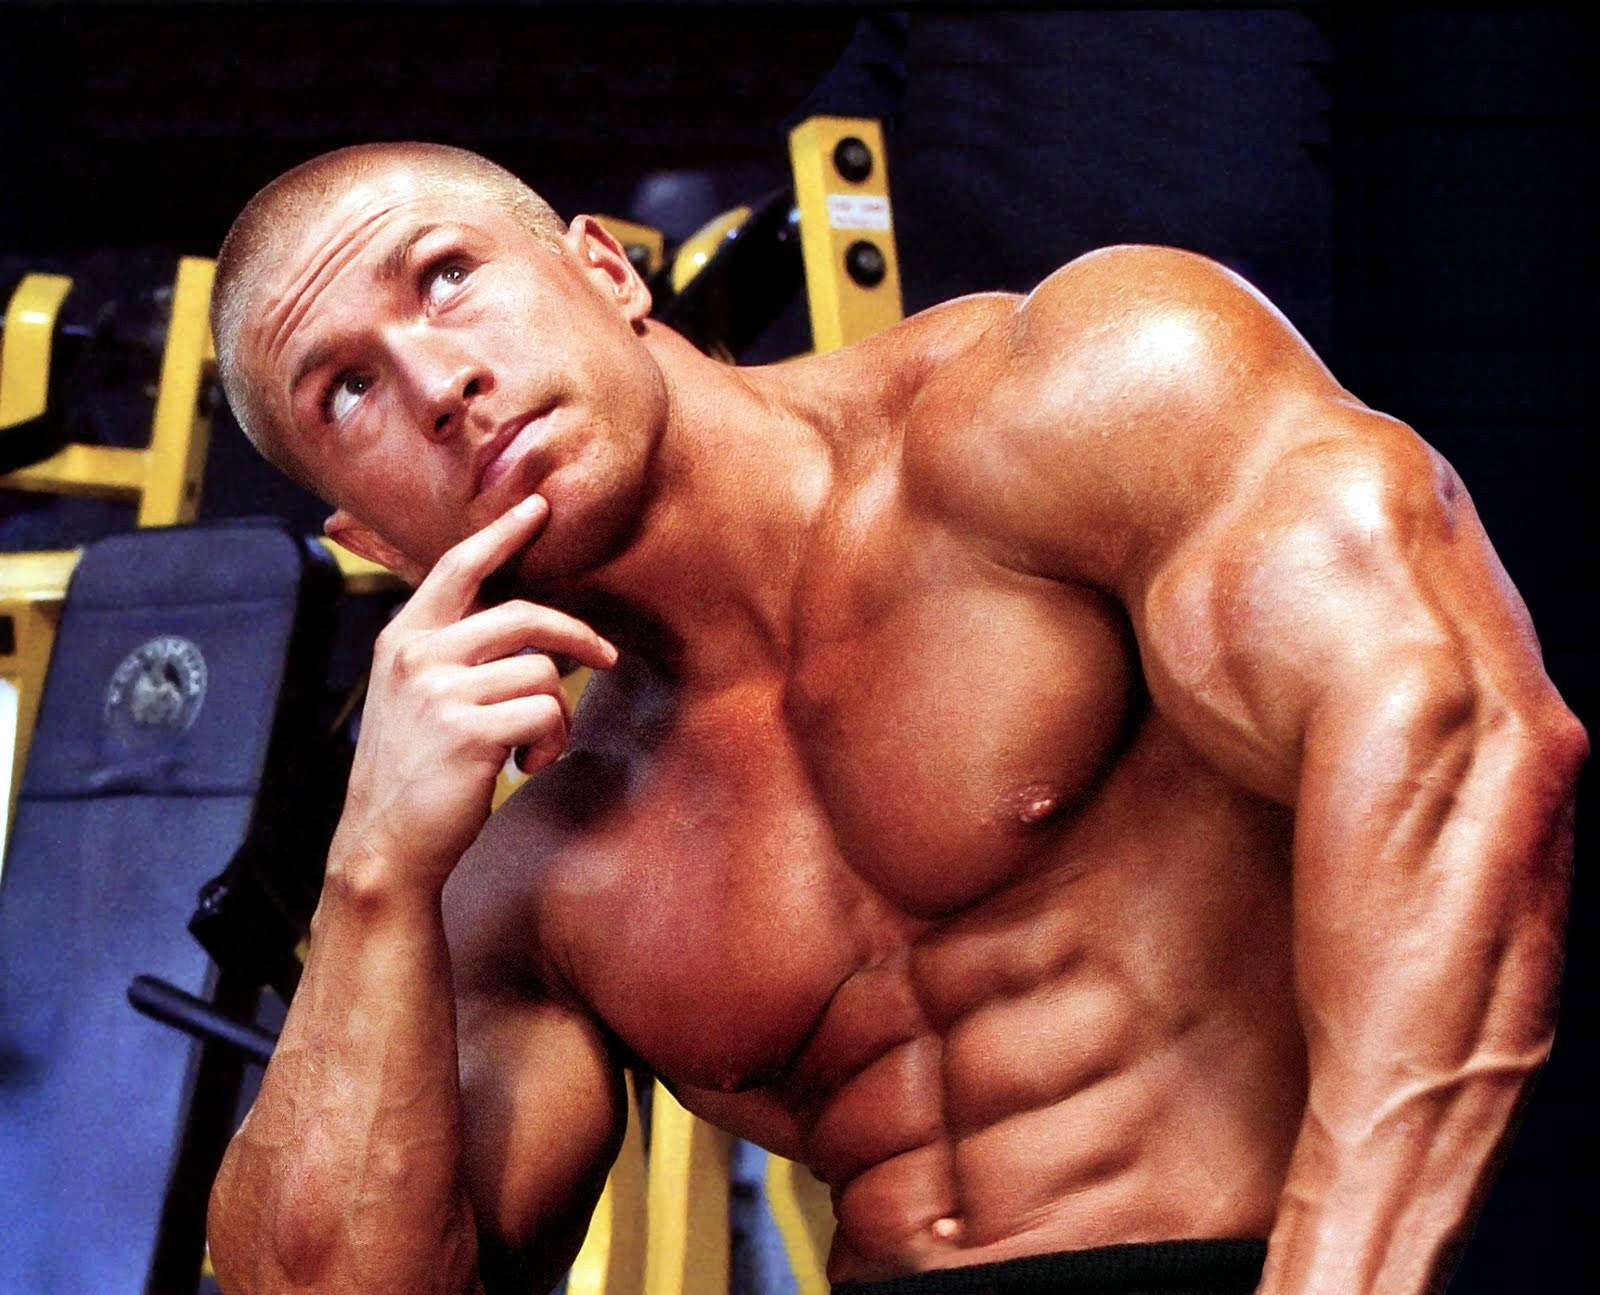 Bodybuilding steroids secrets: March 2015